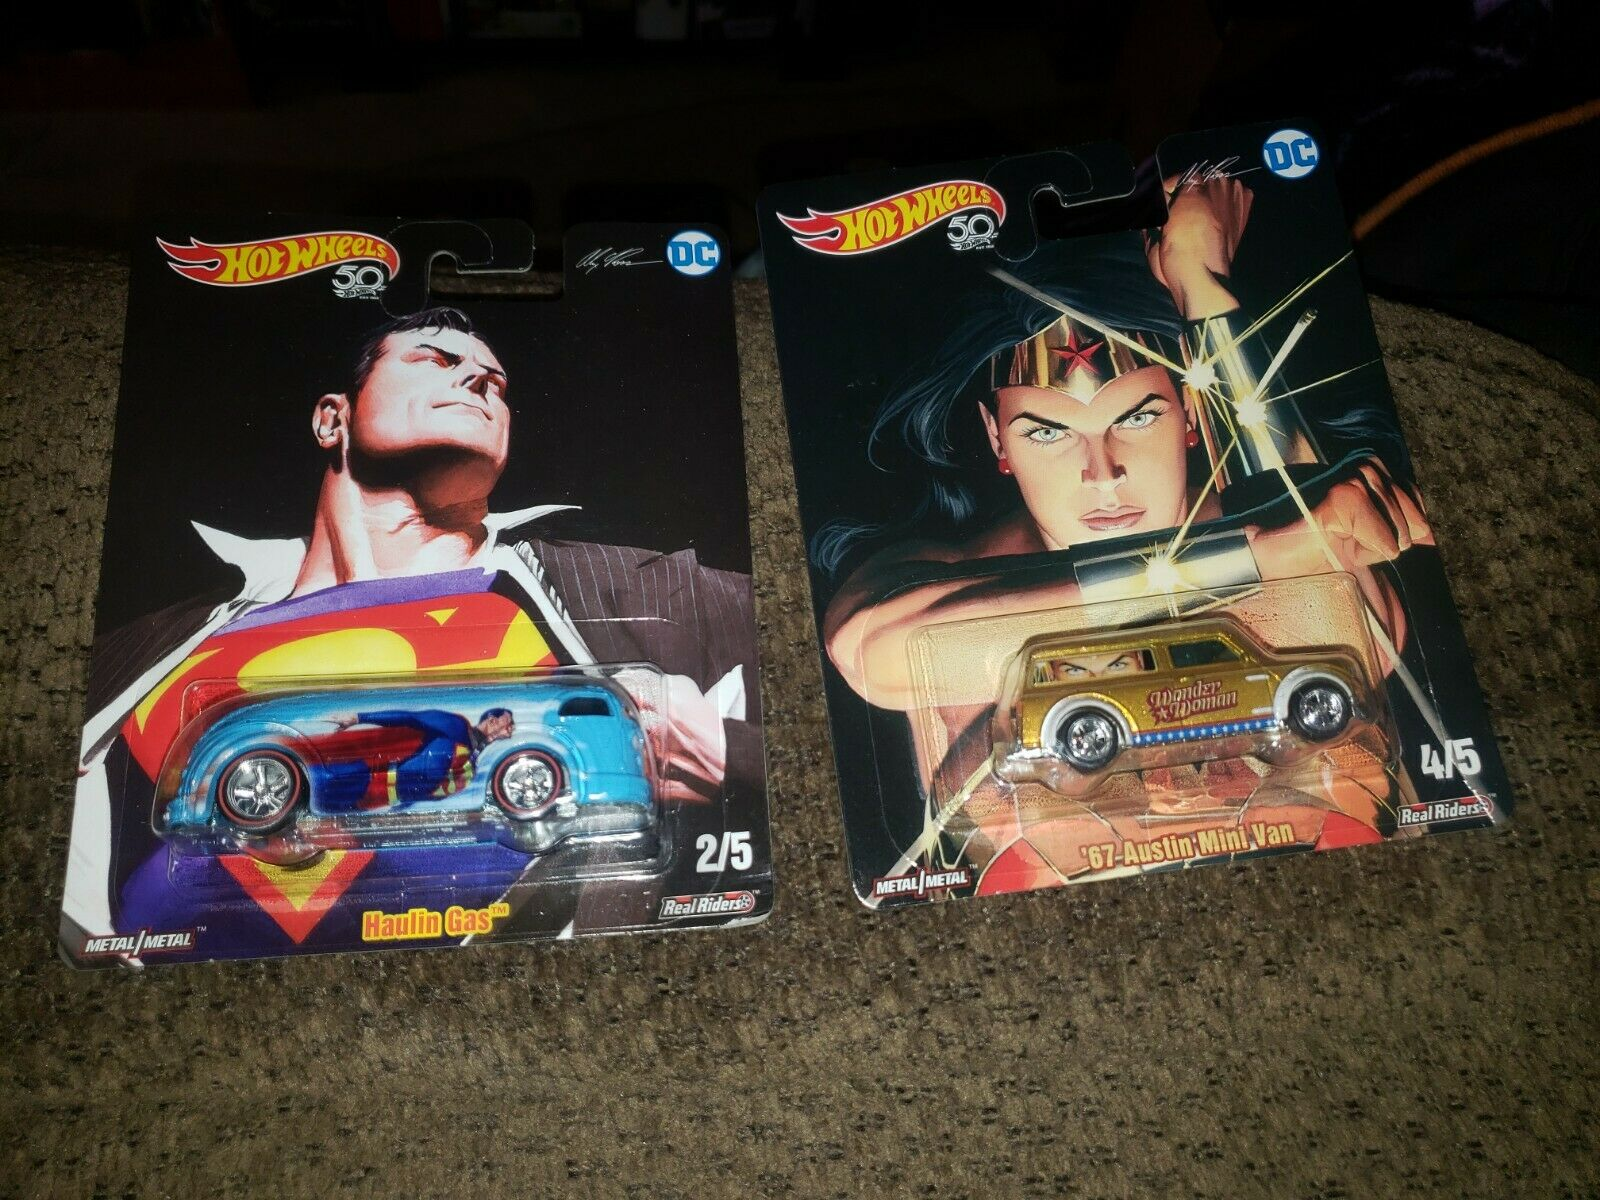 Hot Wheels Pop Culture DC Comics Superman HAULIN/' GAS FKY26 non-mint card